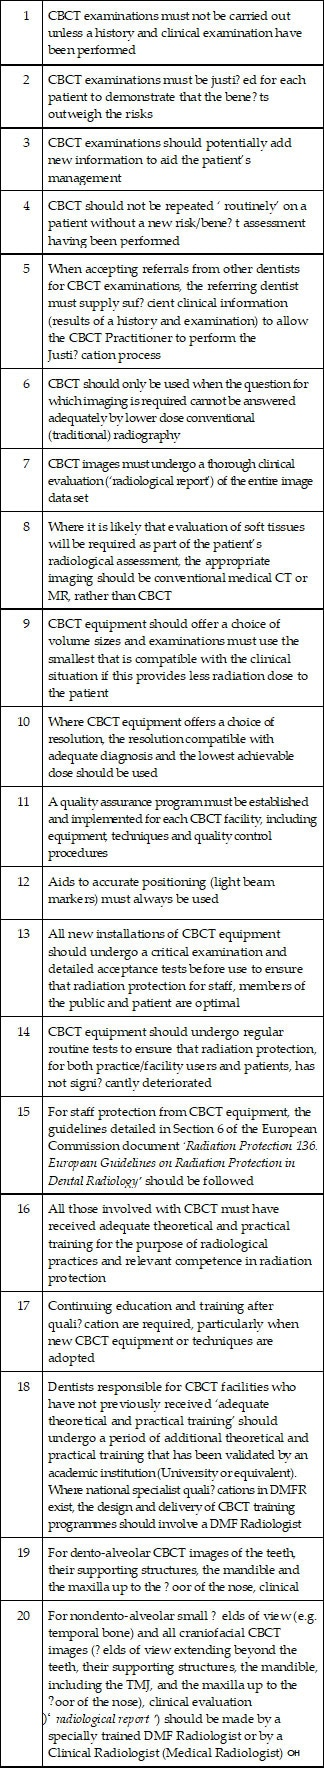 EADMFR Basic Principles on the Use of Cone Beam CT